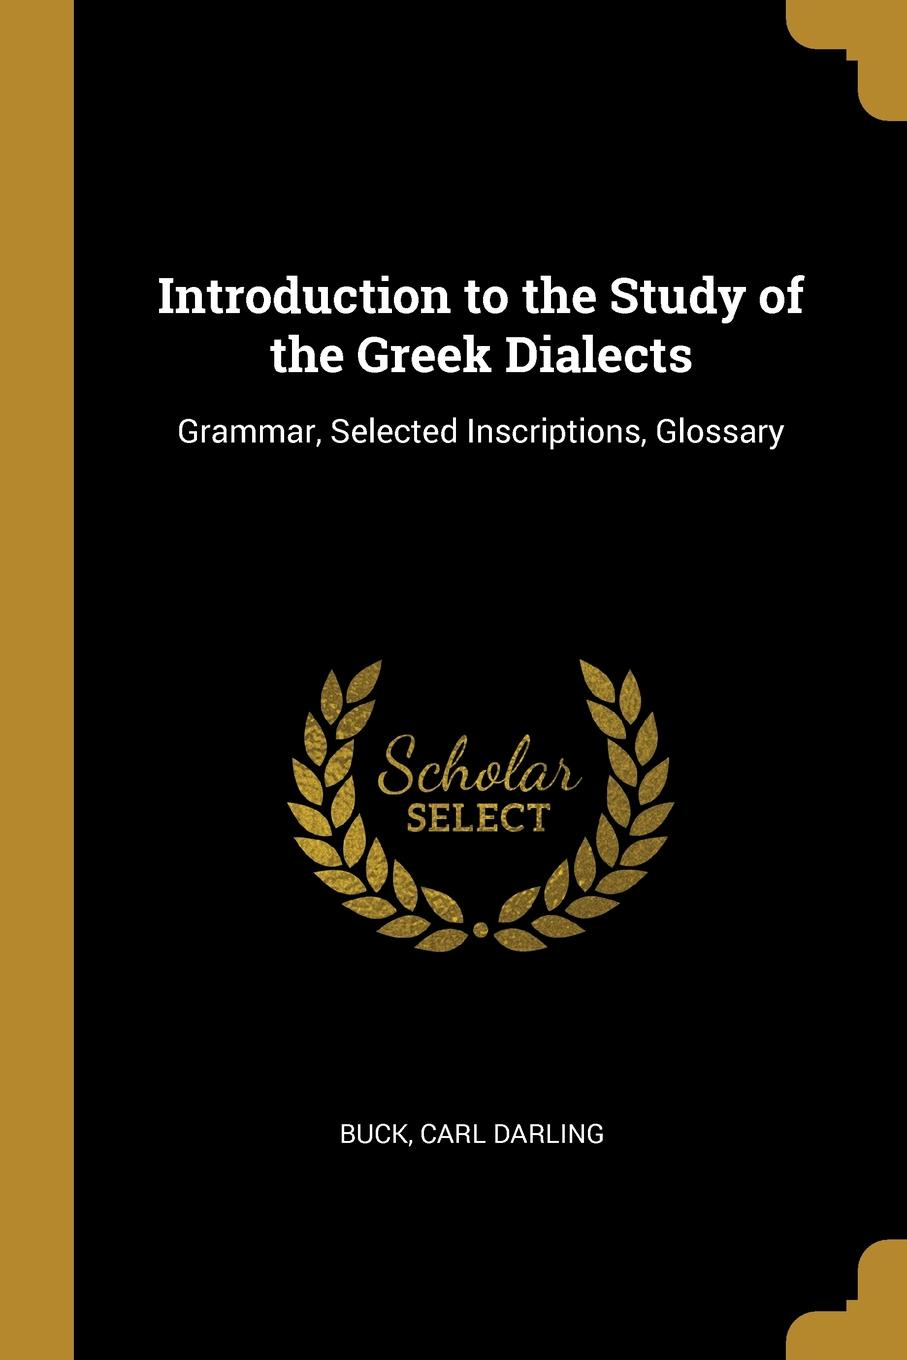 Buck Carl Darling. Introduction to the Study of the Greek Dialects. Grammar, Selected Inscriptions, Glossary